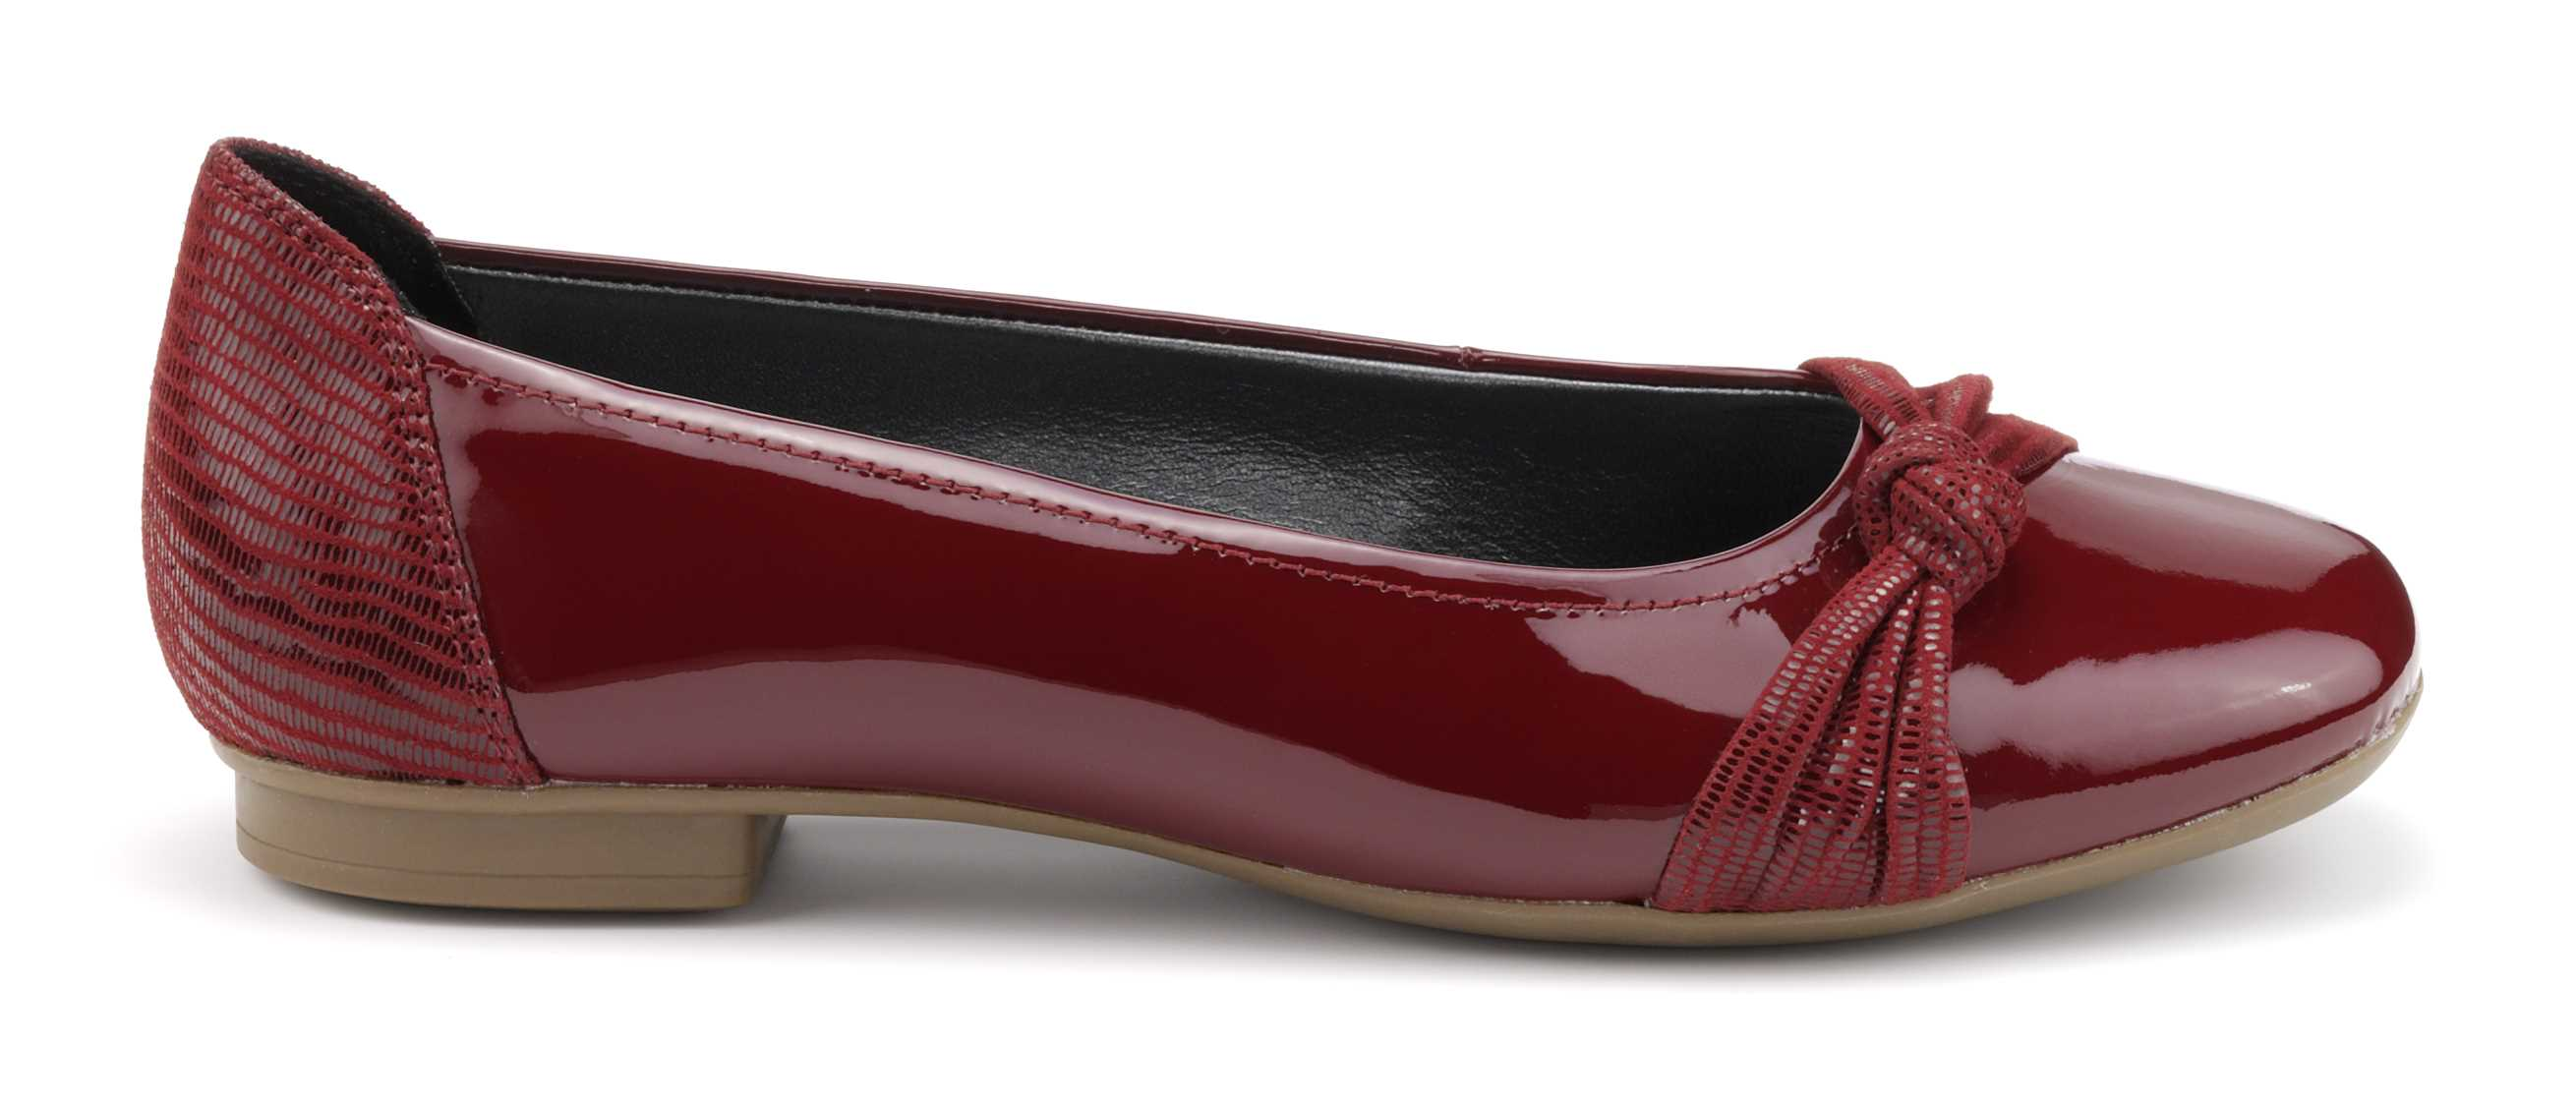 Women's ruby patent shoe Sylvie